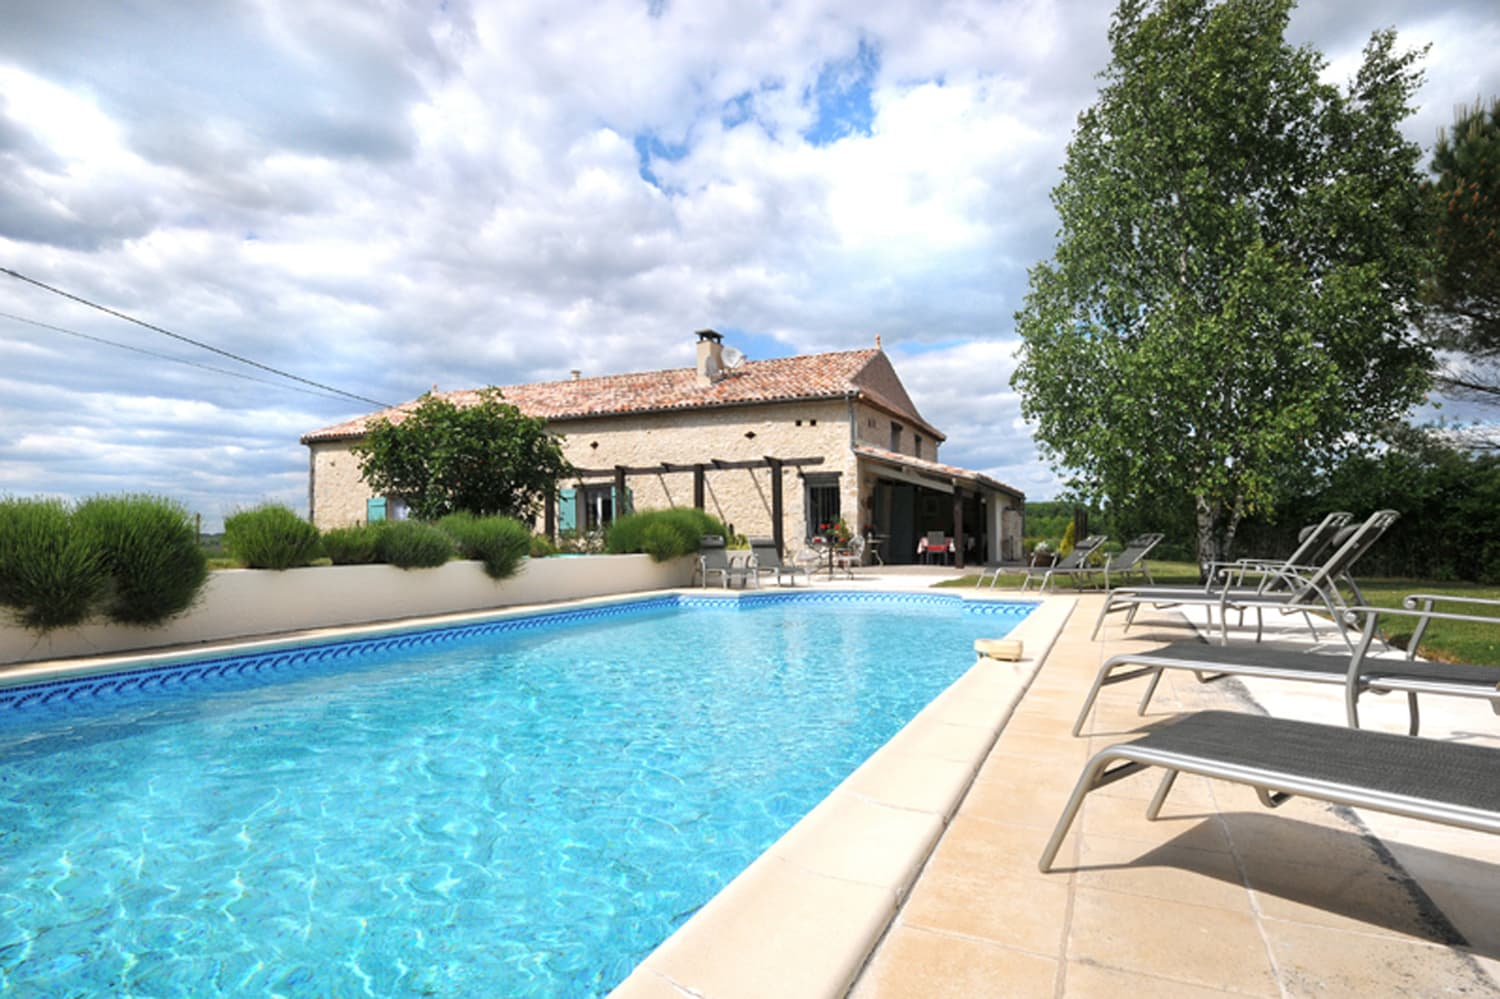 Holiday accommodation home in Dordogne with private, heated pool